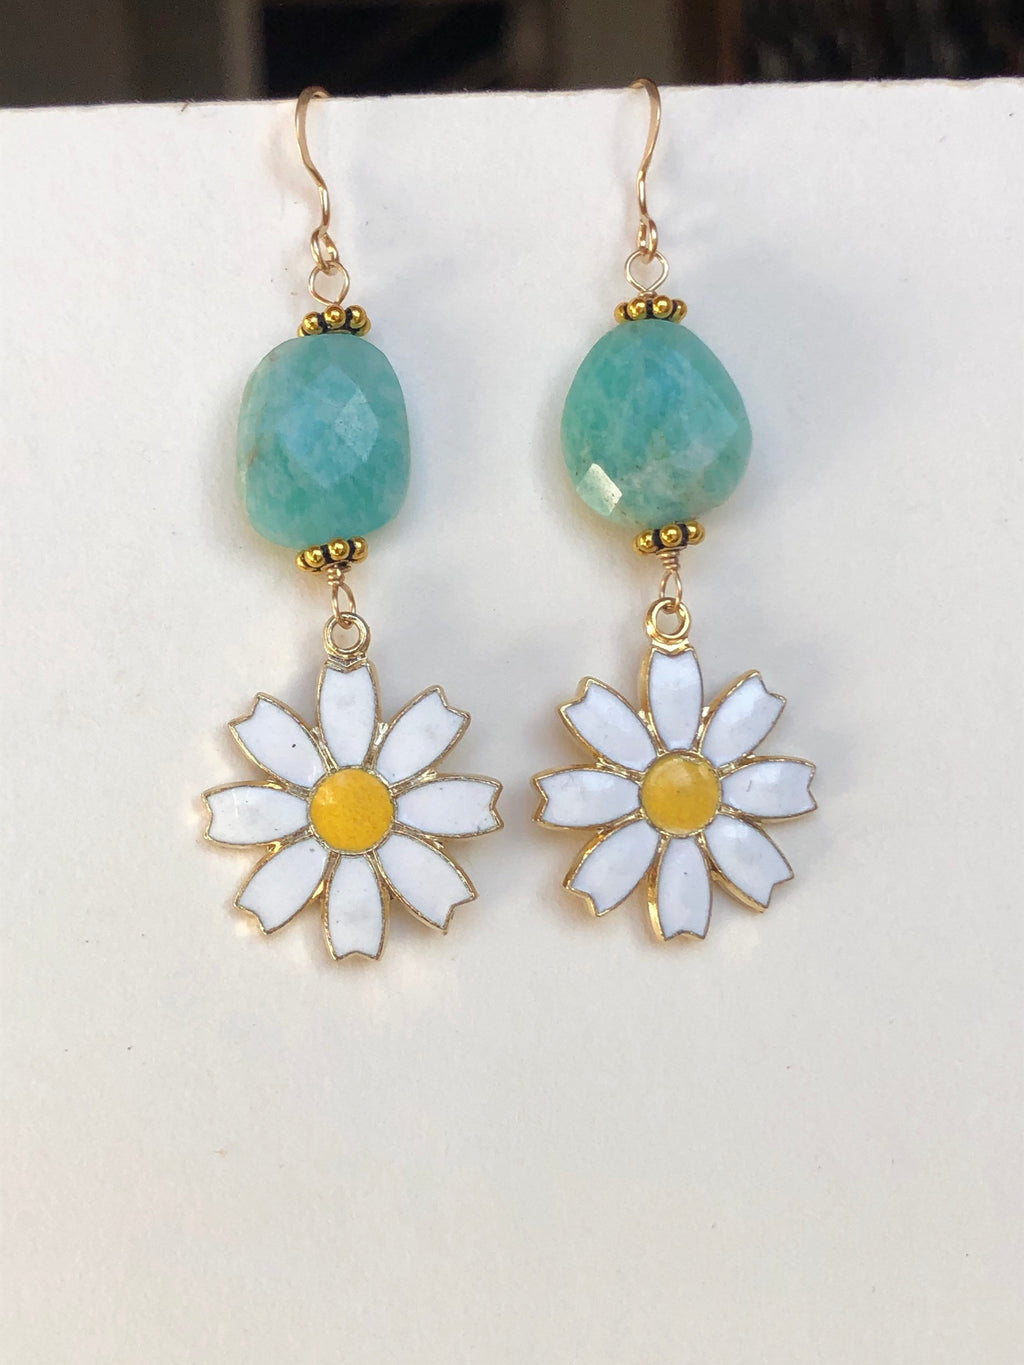 Amazonite Daisy Earrings / April Birth Flower Jewelry / AAA Quality Amazonite Faceted Gemstones / 14k Gold Filled / Vintage Daisy Charms